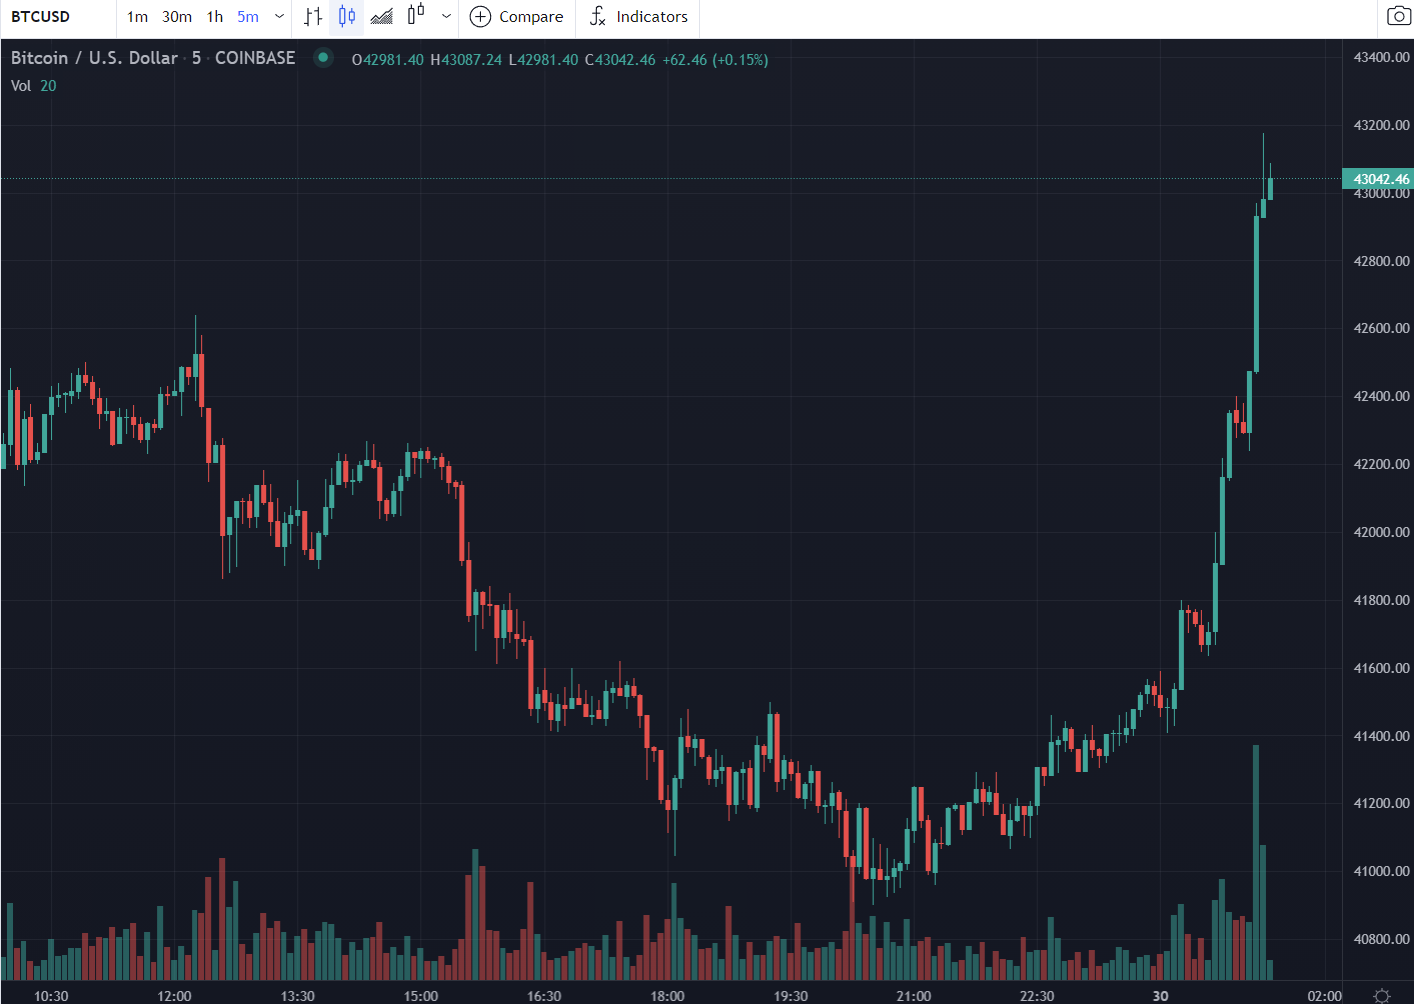 Sharp move higher for the leading crypto.